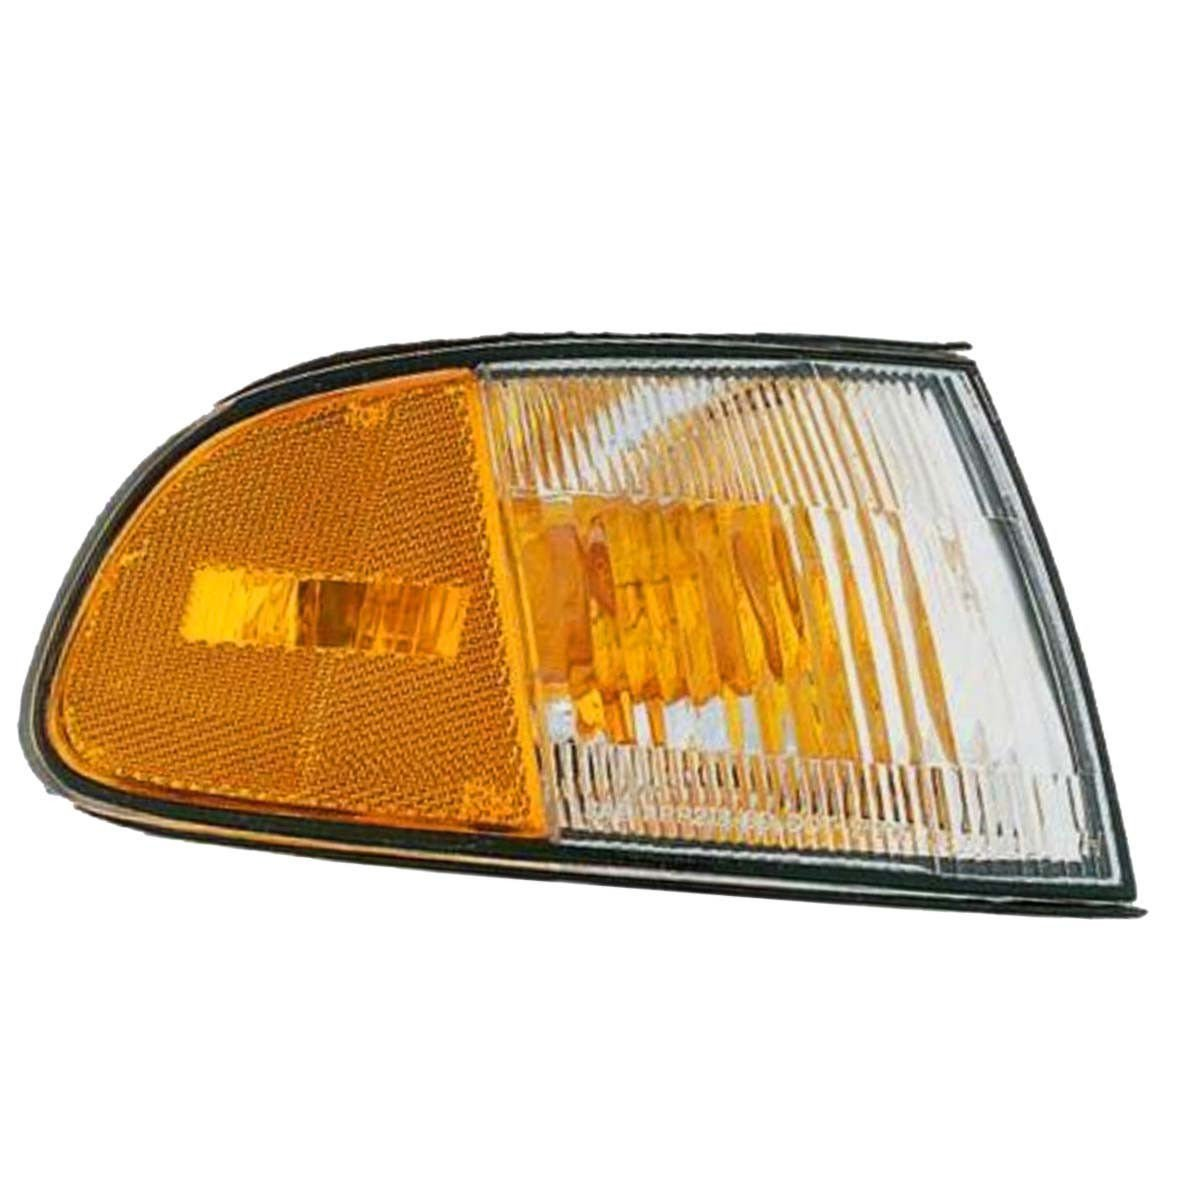 92 93 94 95 Honda Civic Coupe & Hatchback Only Passenger Cornerlight Cornerlamp Eagle Eye Lights 4333267105